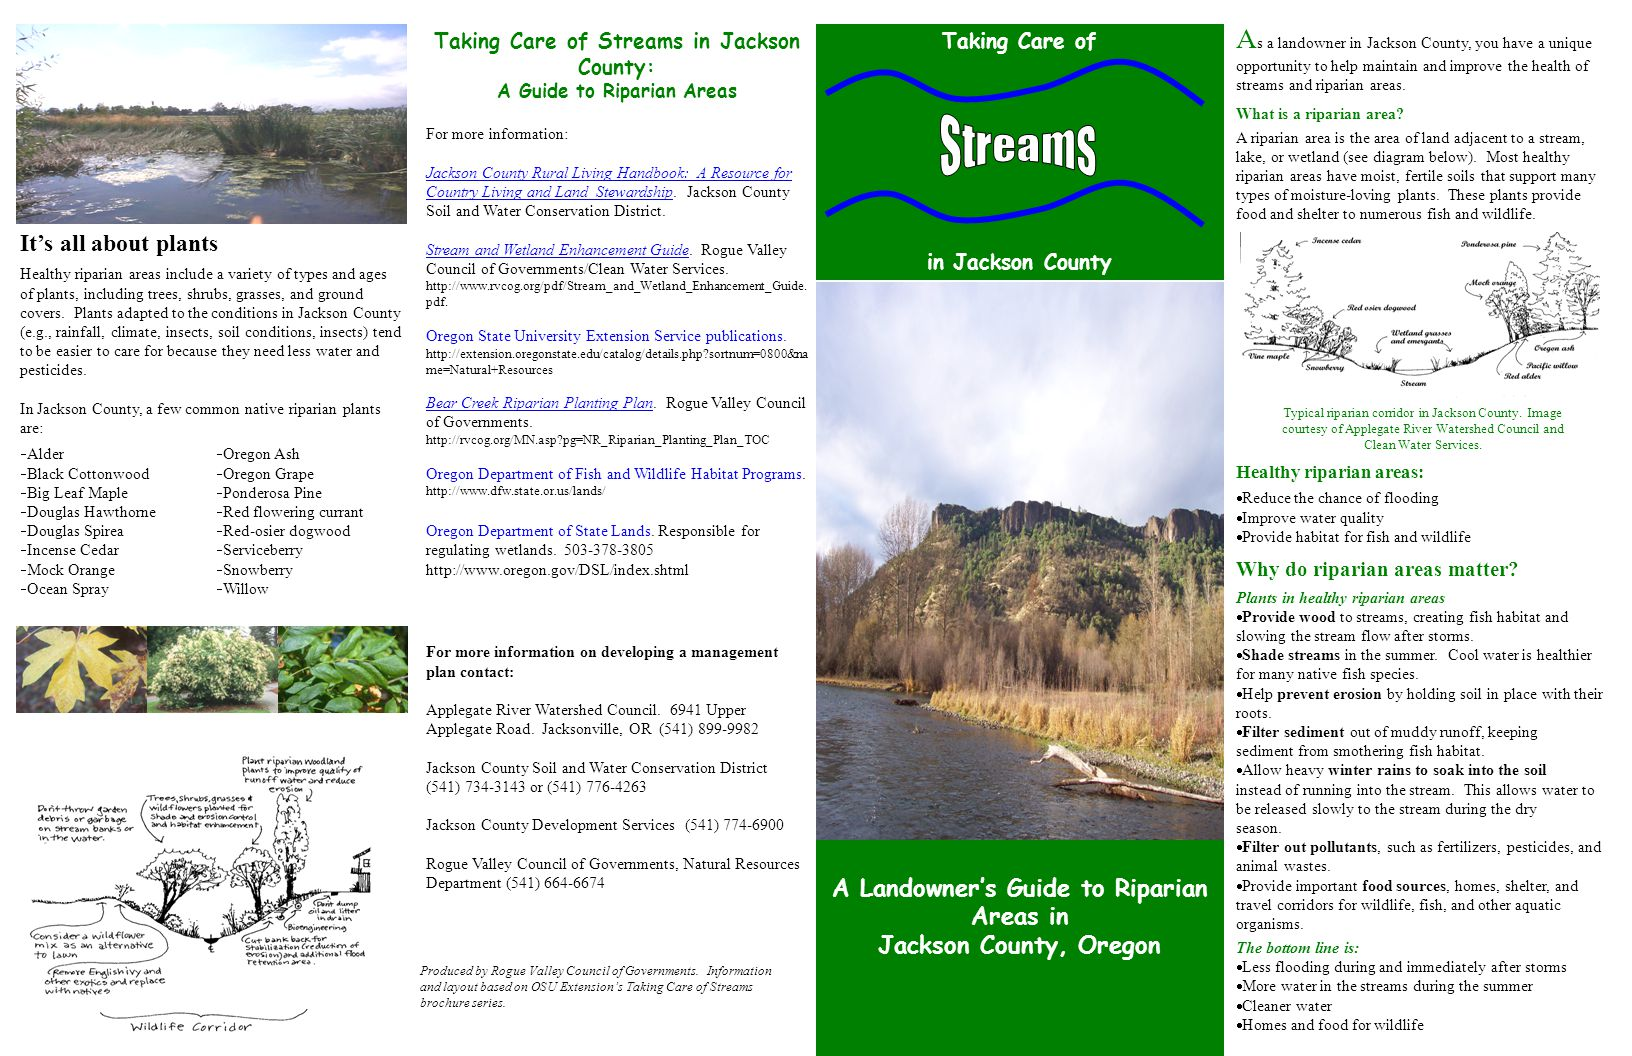 A Landowner's Guide to Riparian Areas in Jackson County, Oregon Taking Care of in Jackson County Taking Care of Streams in Jackson County: A Guide to